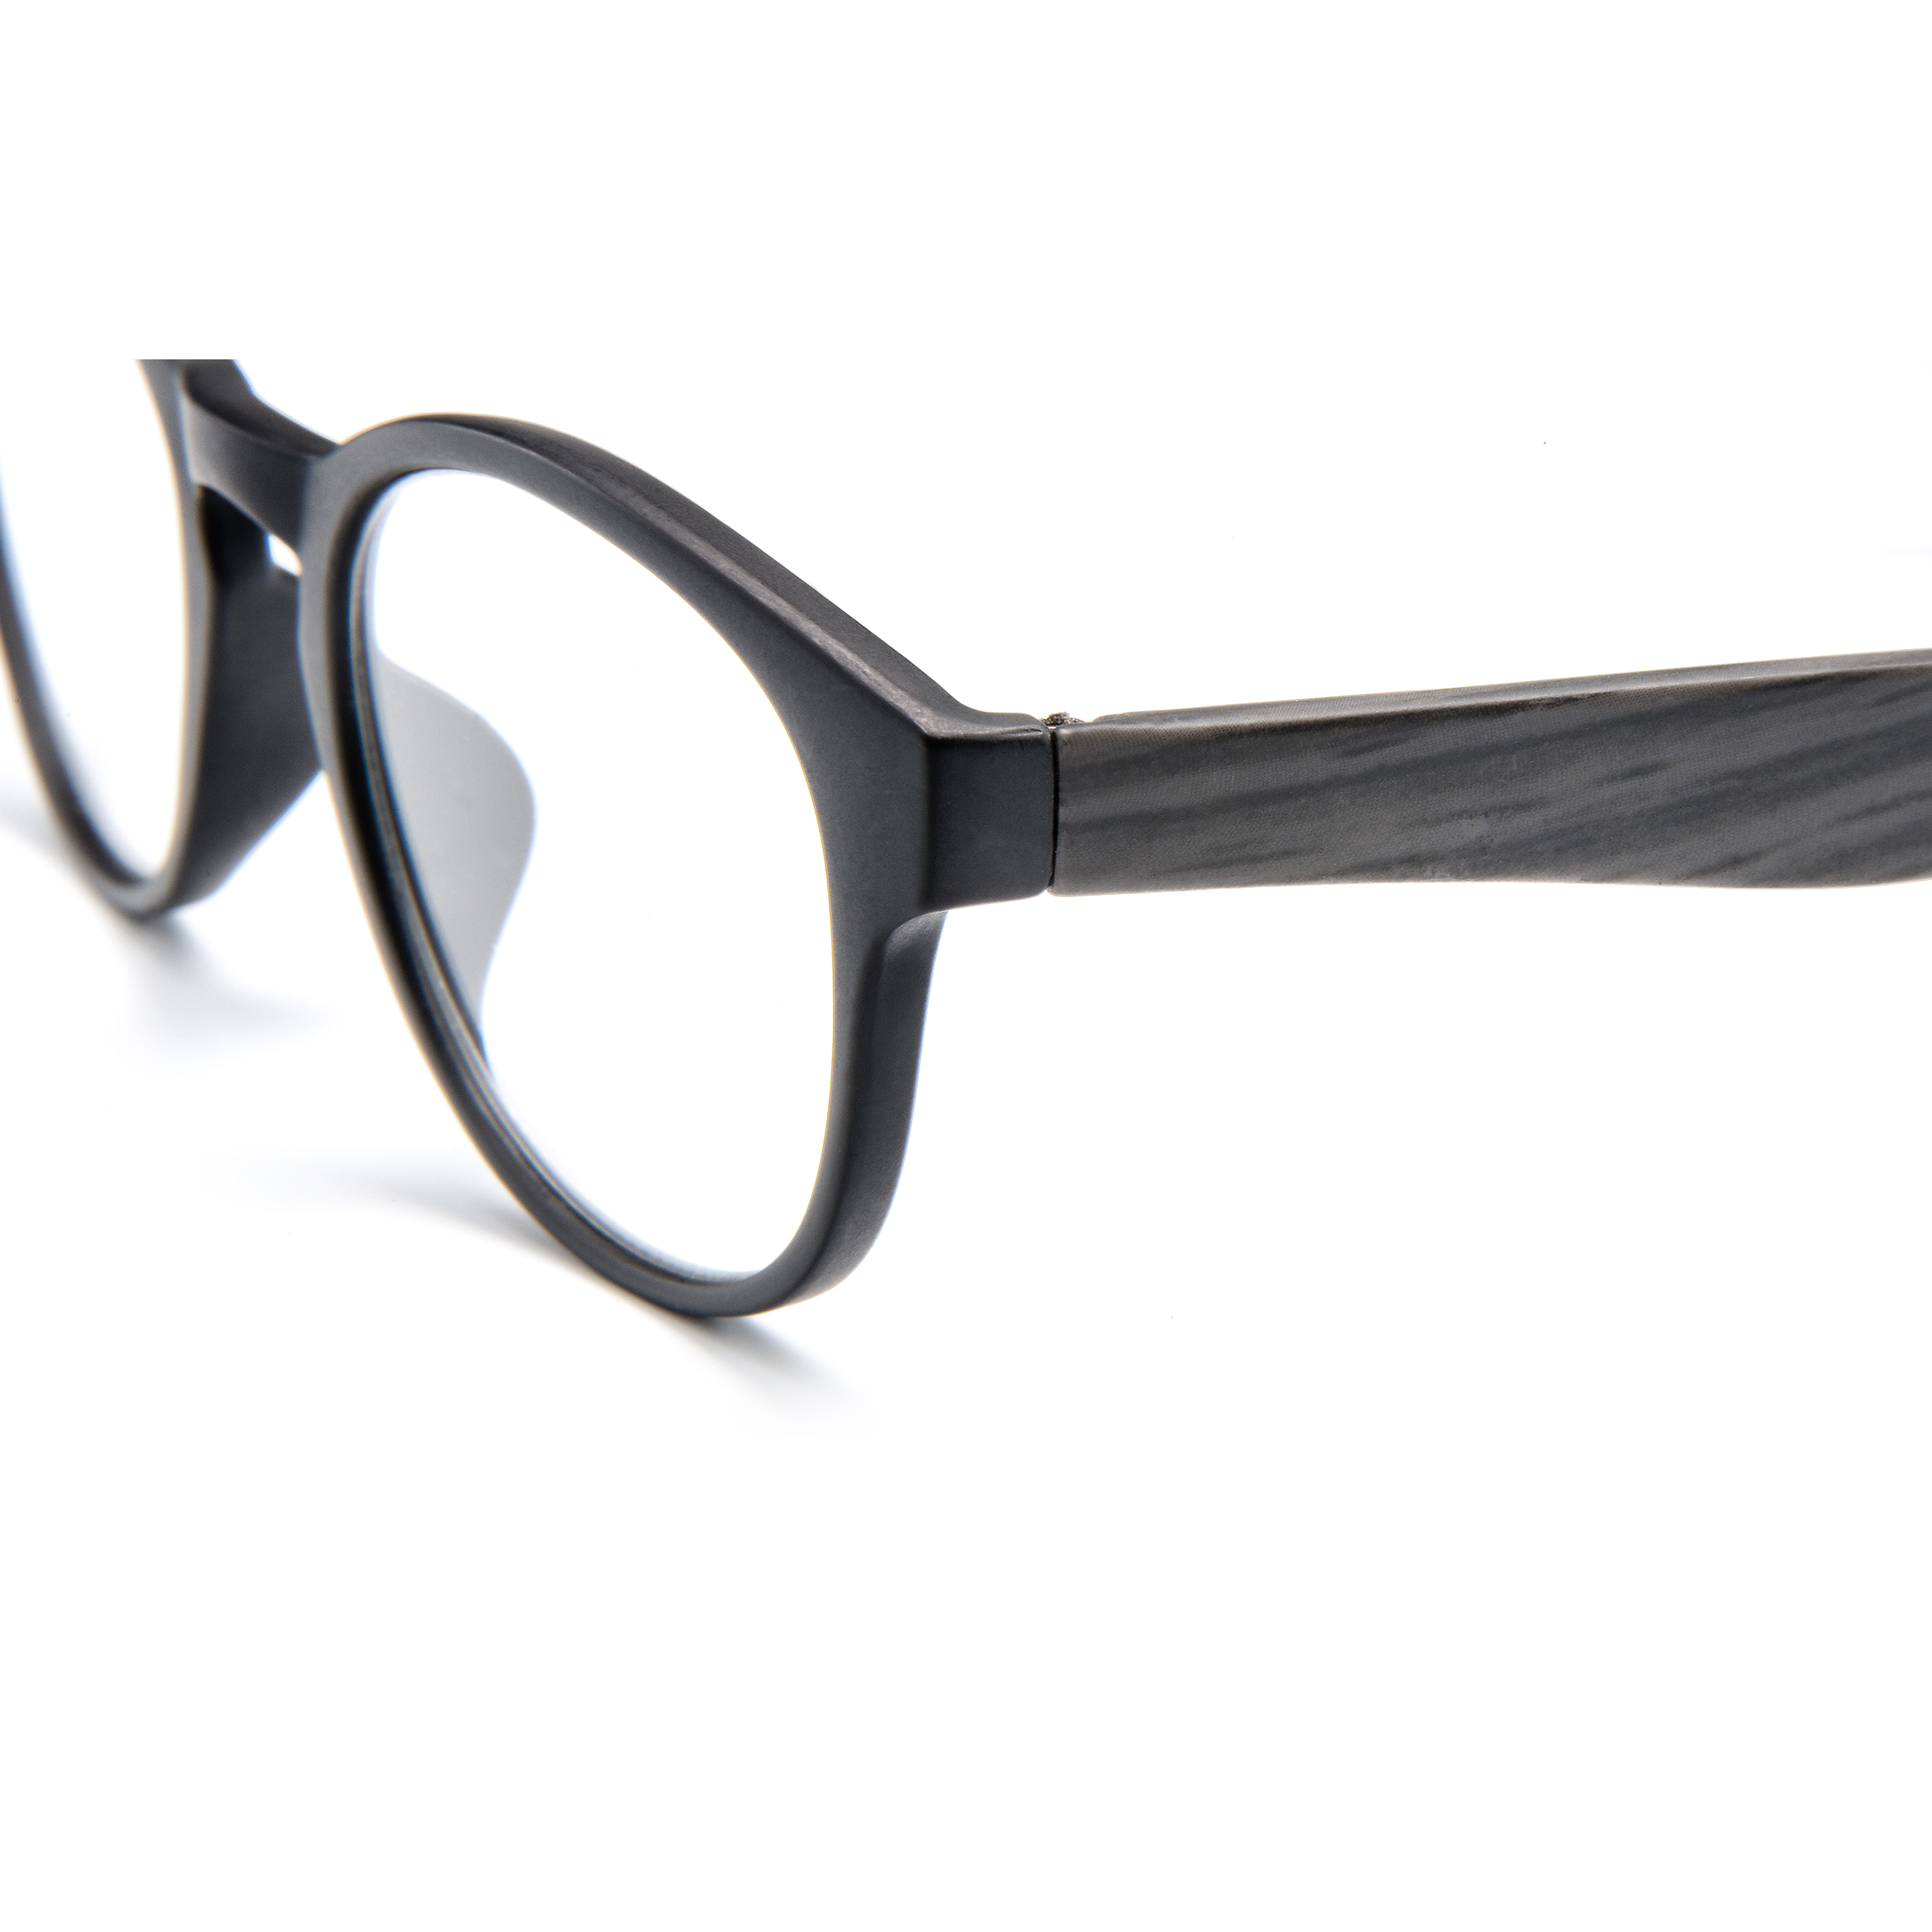 Detailed view frame, reading glasses Amsterdam black